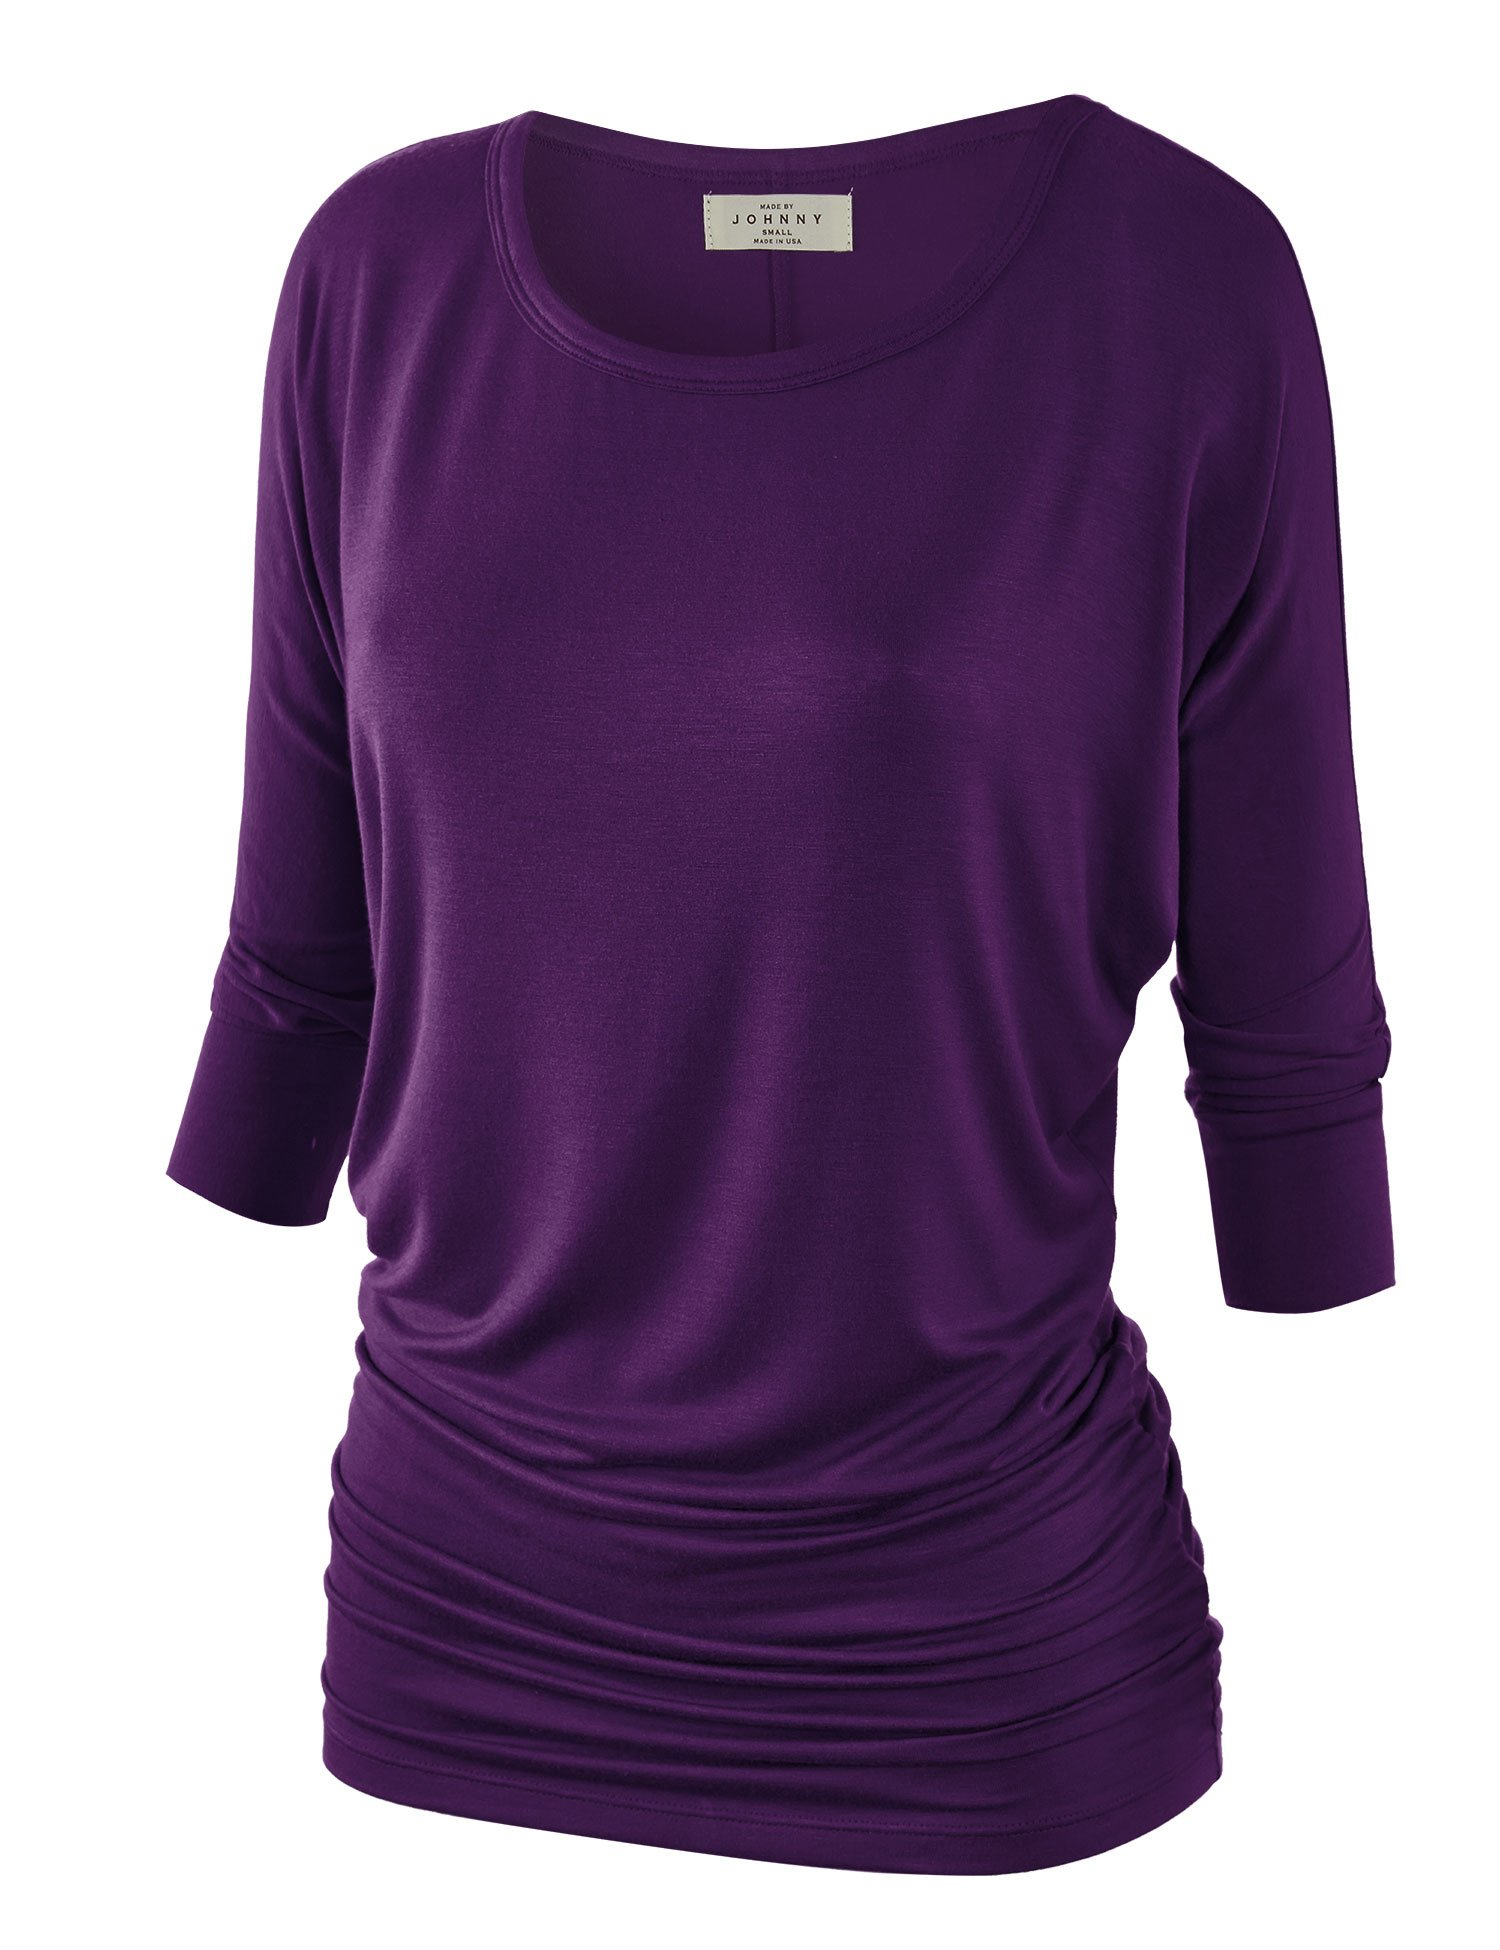 Made By Johnny Women's 3/4 Sleeve Crew/V Neck Drape Dolman Top with Side Shirring XS-5XL Plus Size